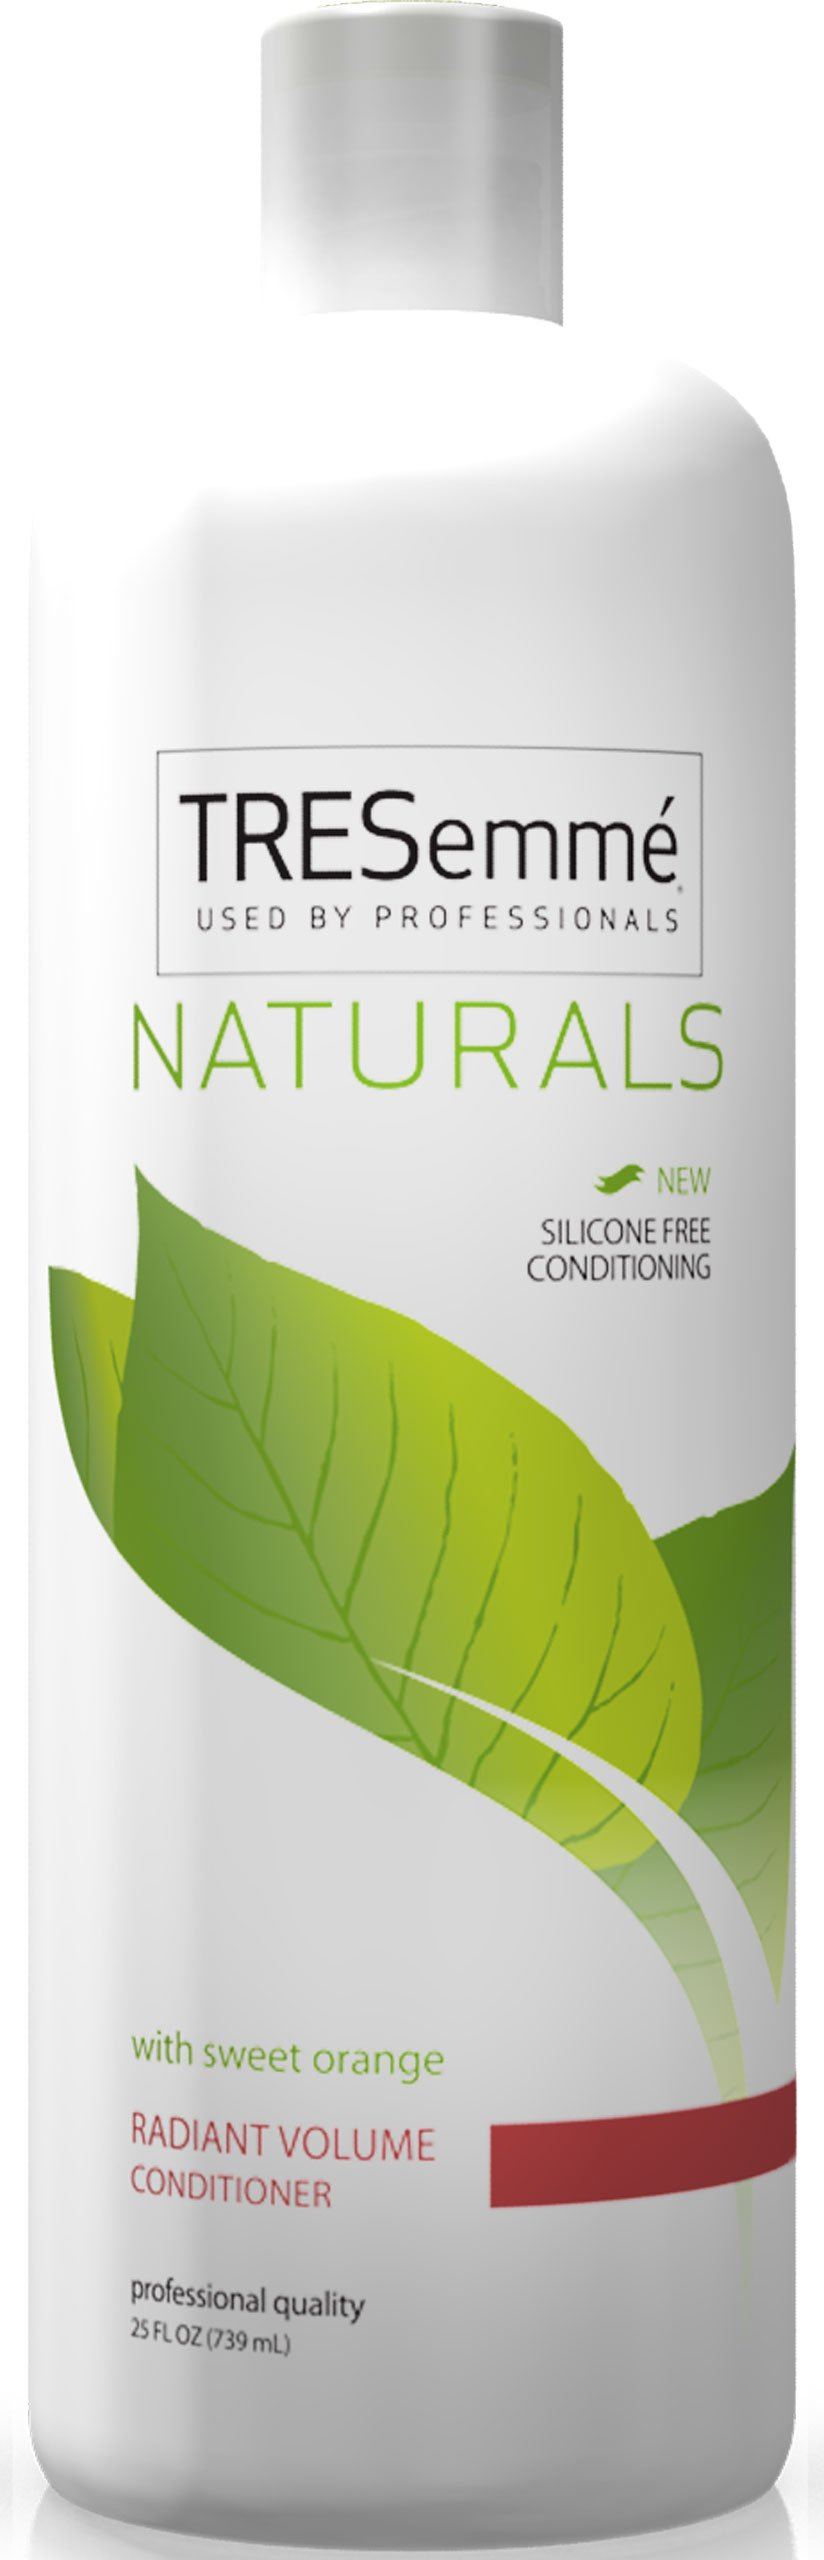 TRESemme Naturals Radiant Volume Conditioner, 25 Ounce